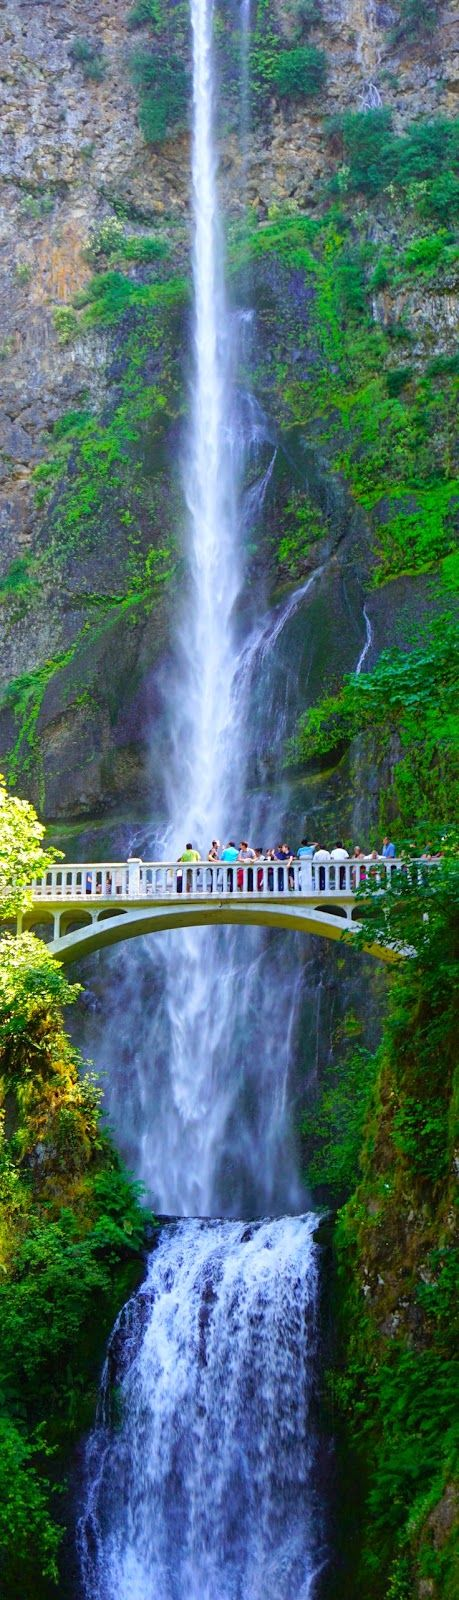 Multnomah Falls, Portland | Destinations Planet